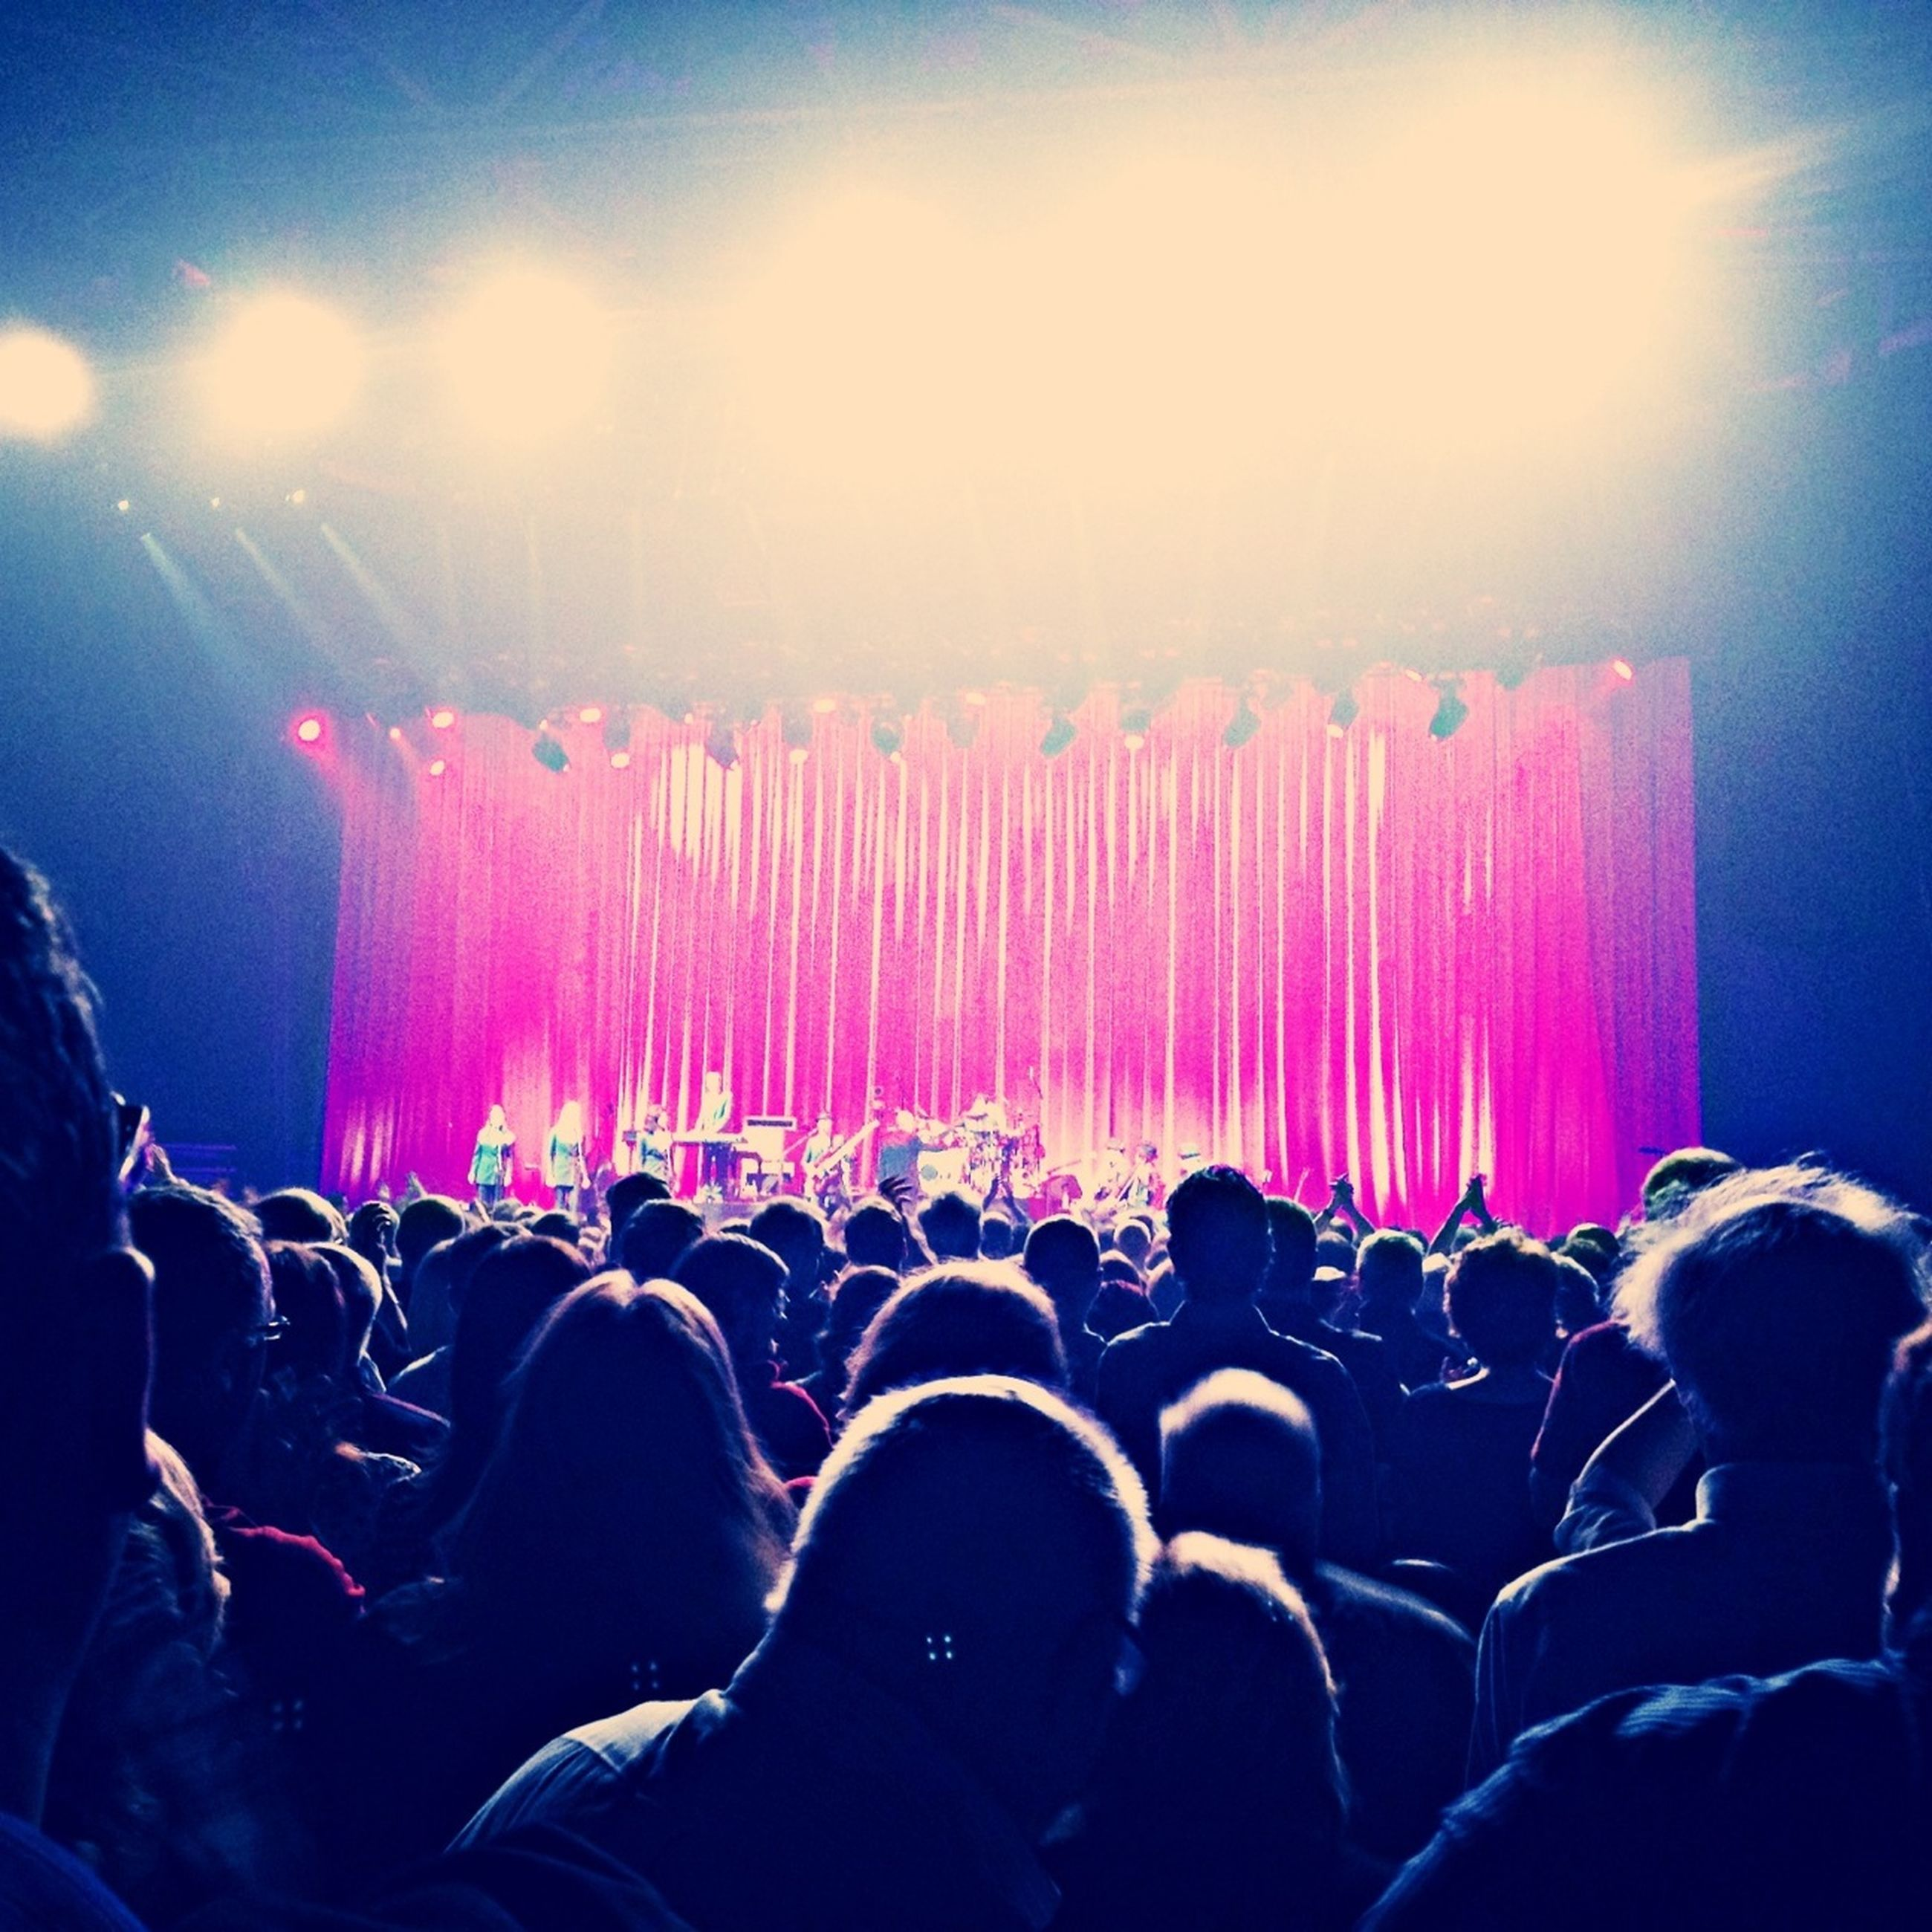 large group of people, crowd, lifestyles, enjoyment, leisure activity, person, men, arts culture and entertainment, fun, event, togetherness, celebration, performance, music, illuminated, excitement, music festival, sky